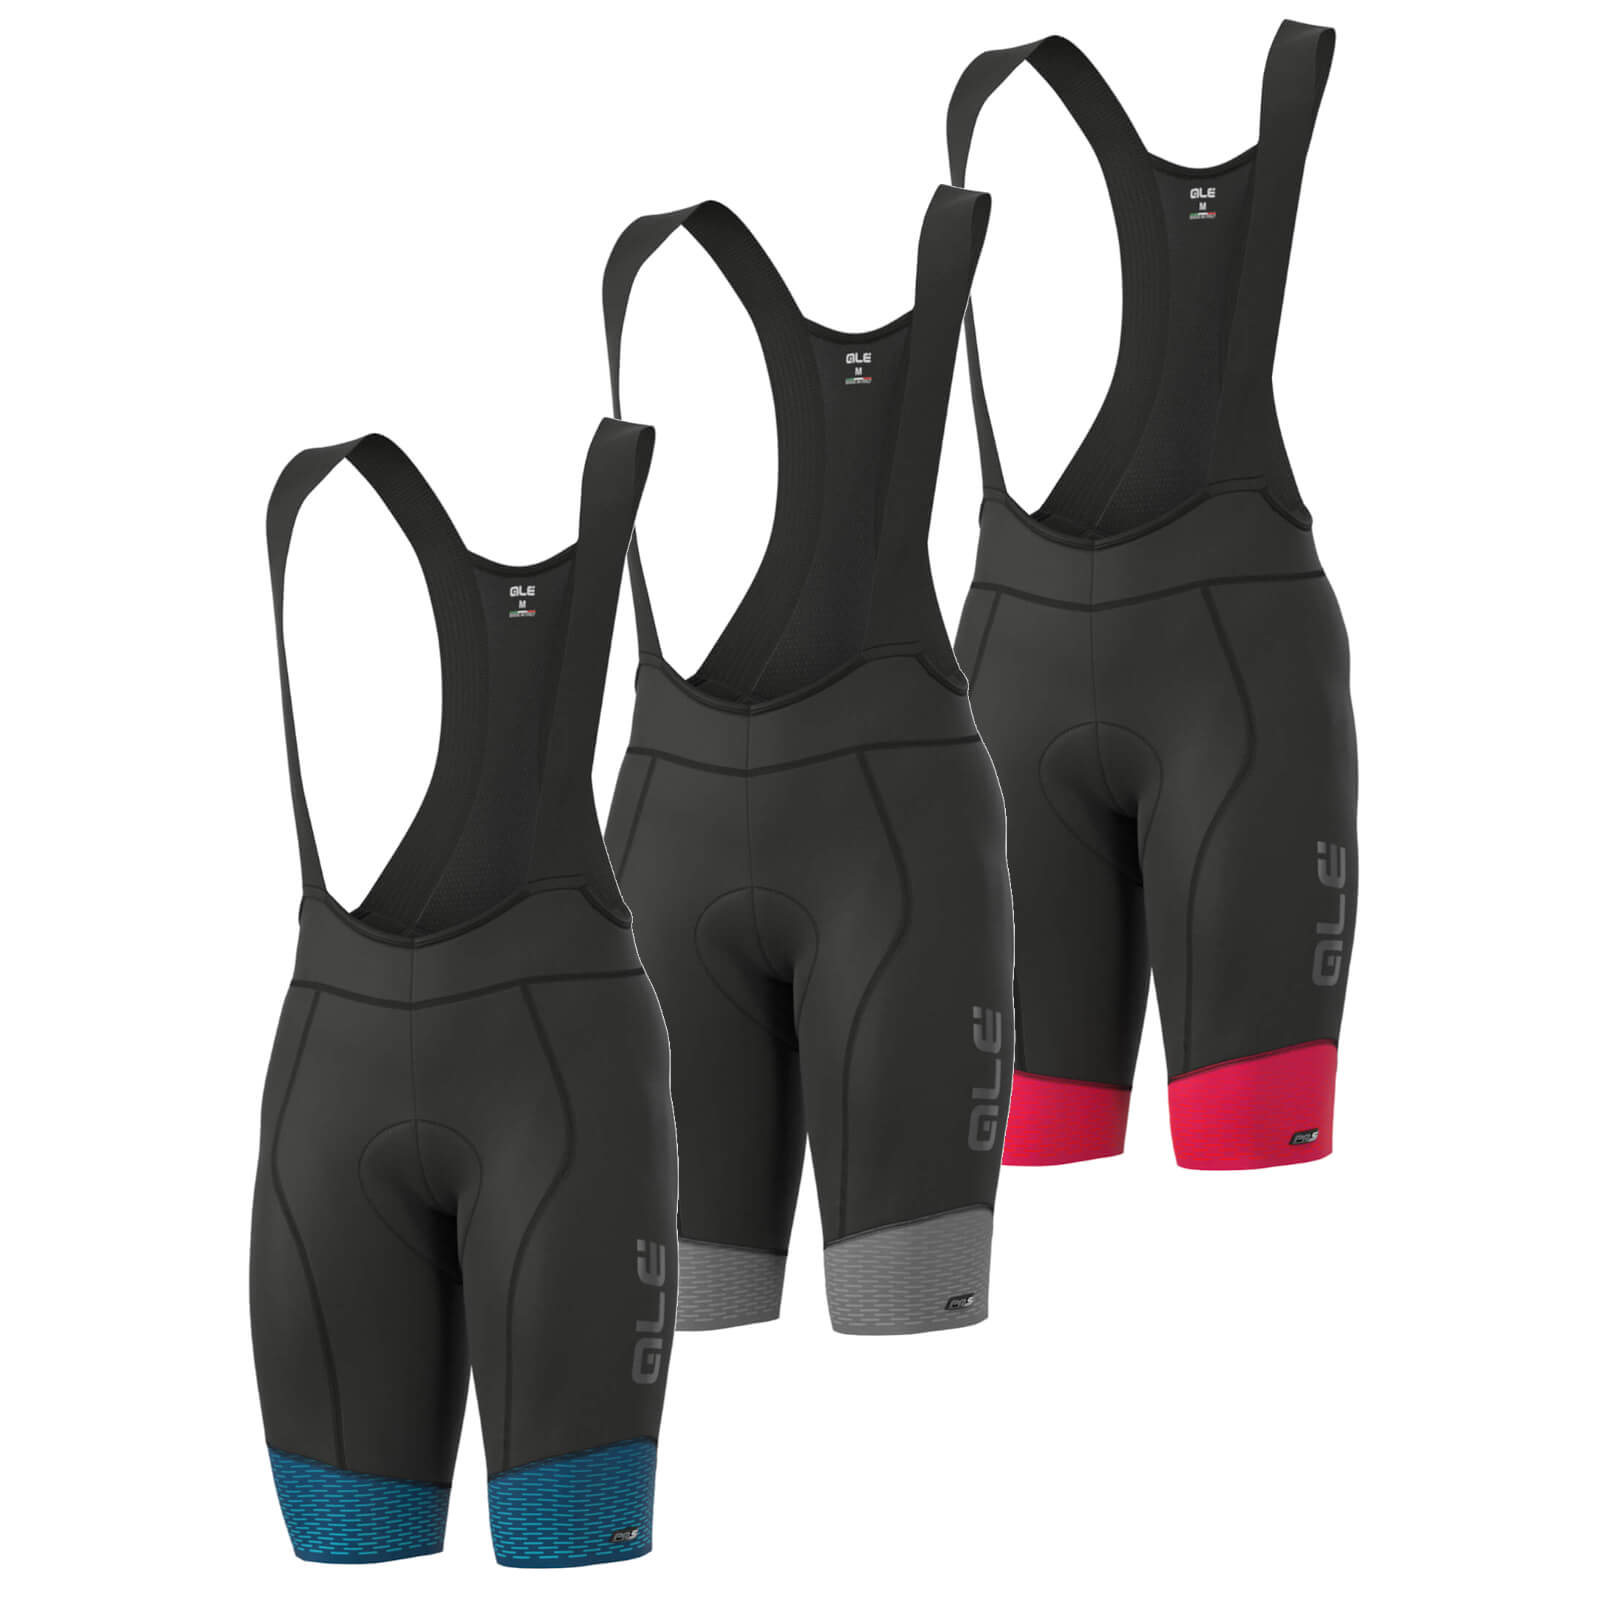 Alé Pr-S Delta Winter Wr Bibshorts - L - Black/Grey